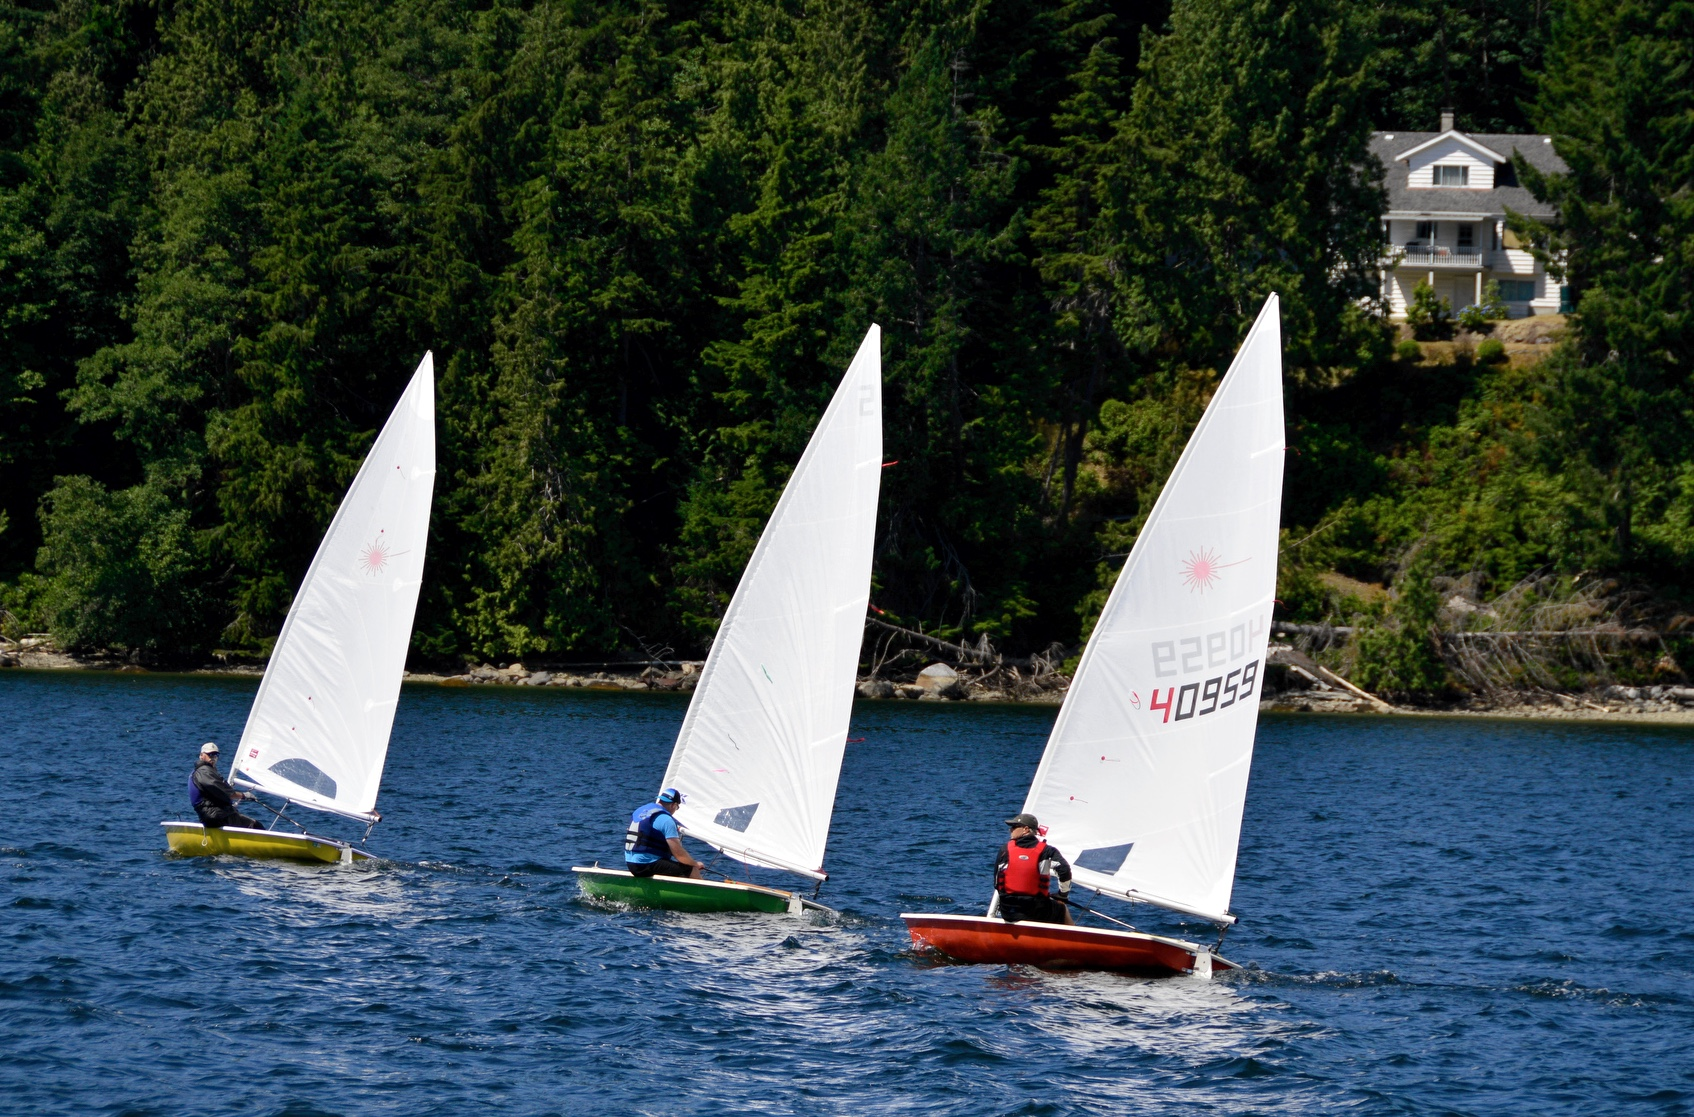 Kevin Mcevoy, left, Ken Olson, center, Brian Fournier, right, racing in the 6th Annual Poise Cove Regatta July 16th, 2017